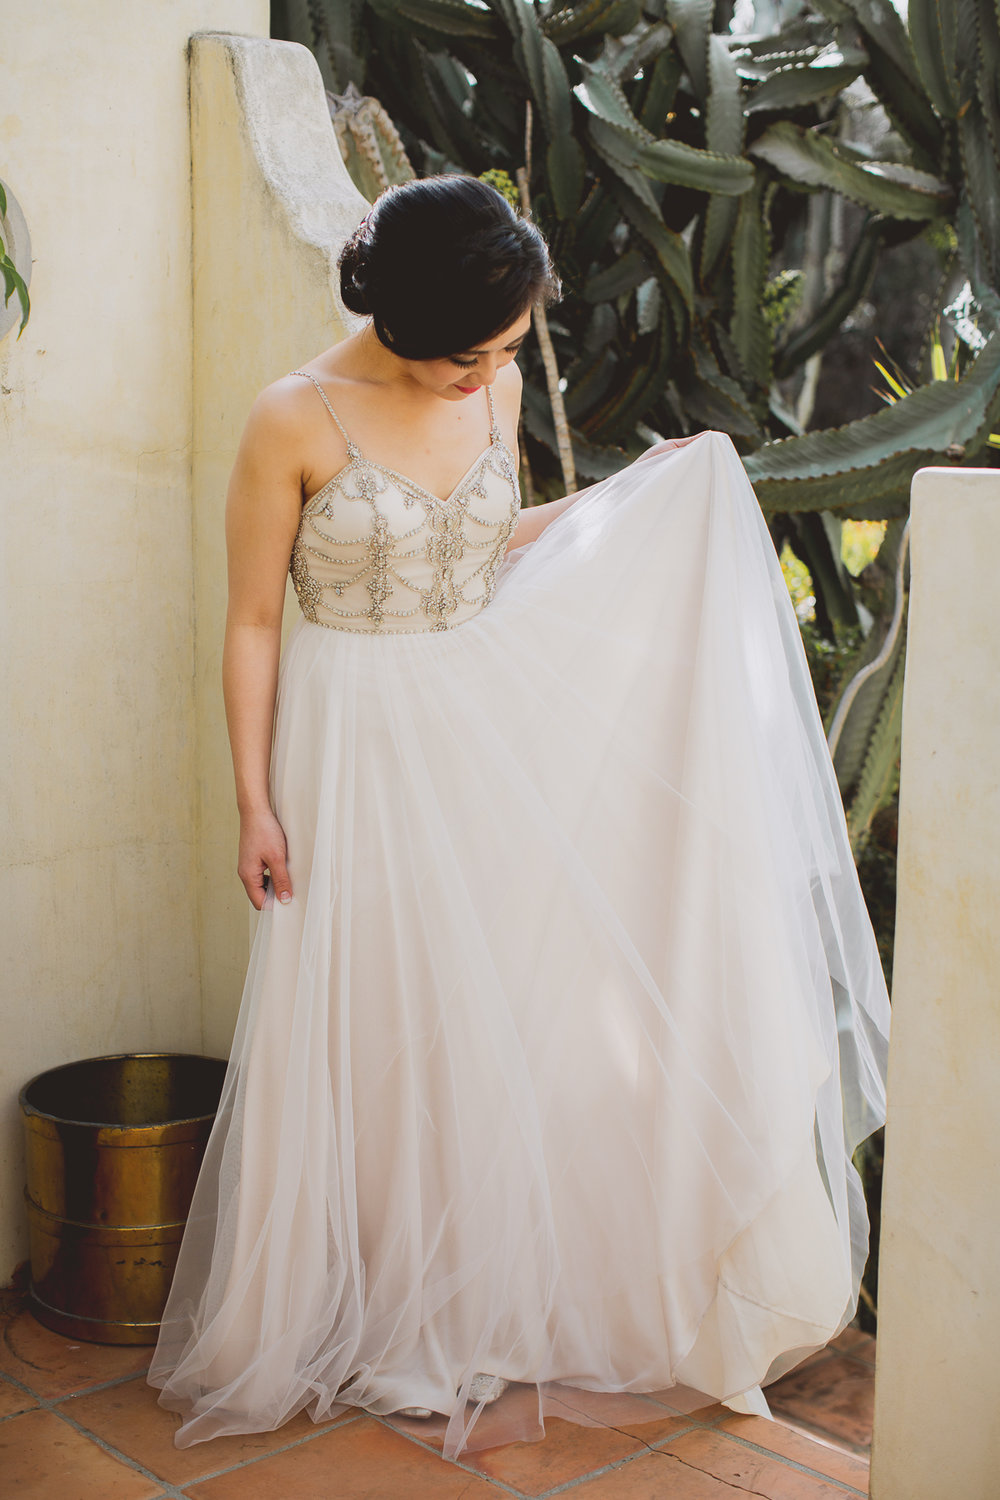 julie-isaac-hollywood-madera-wedding-kelley-raye-los-angeles-wedding-photographer-42.jpg